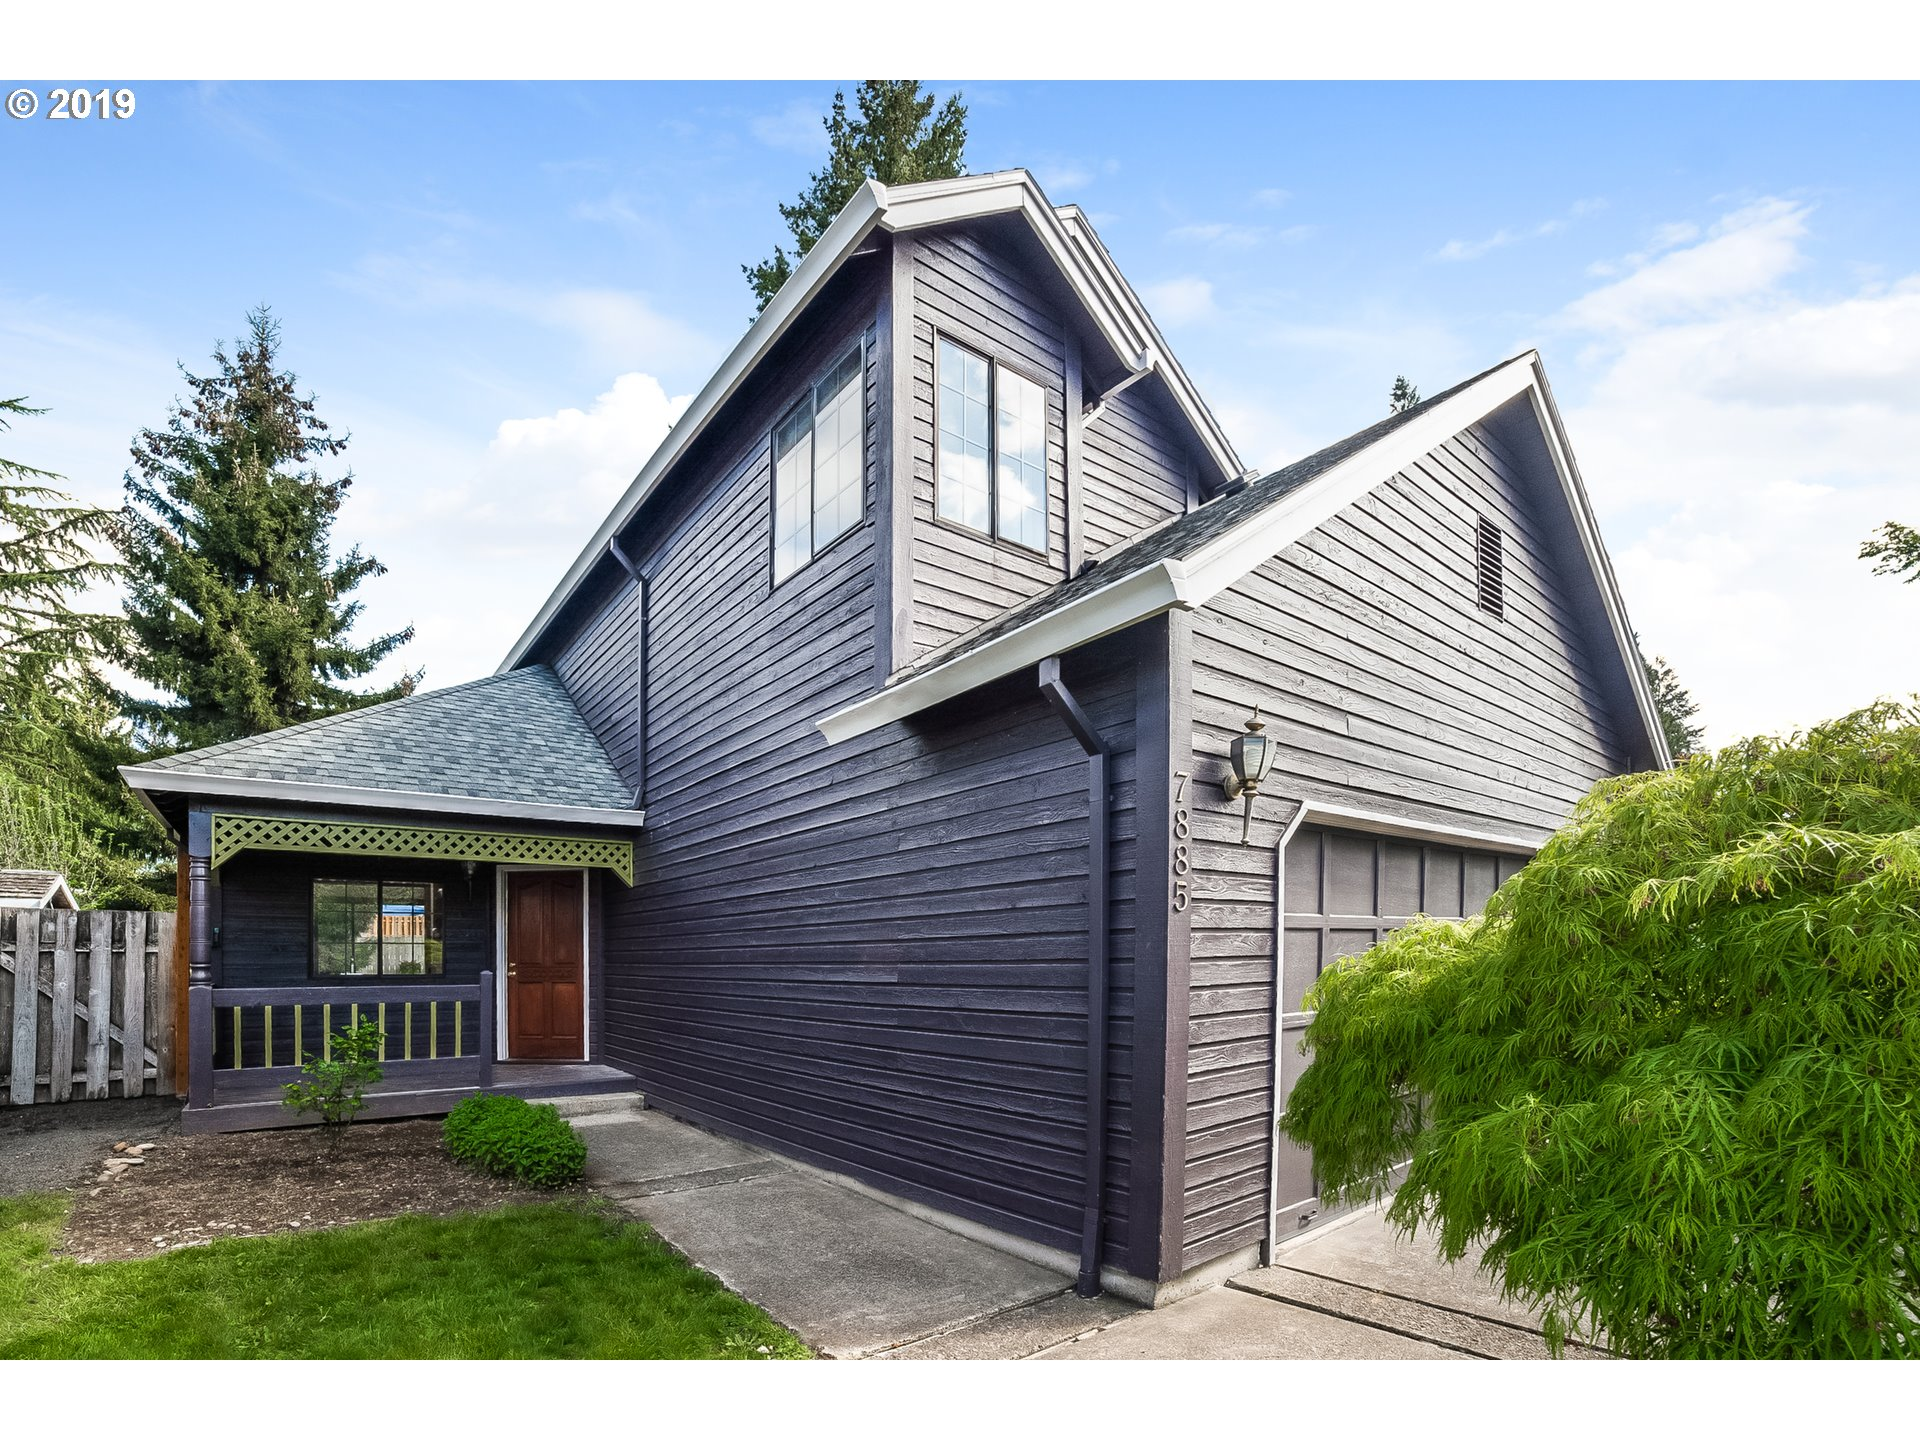 7885 SW BOND ST, TIGARD, OR 97224